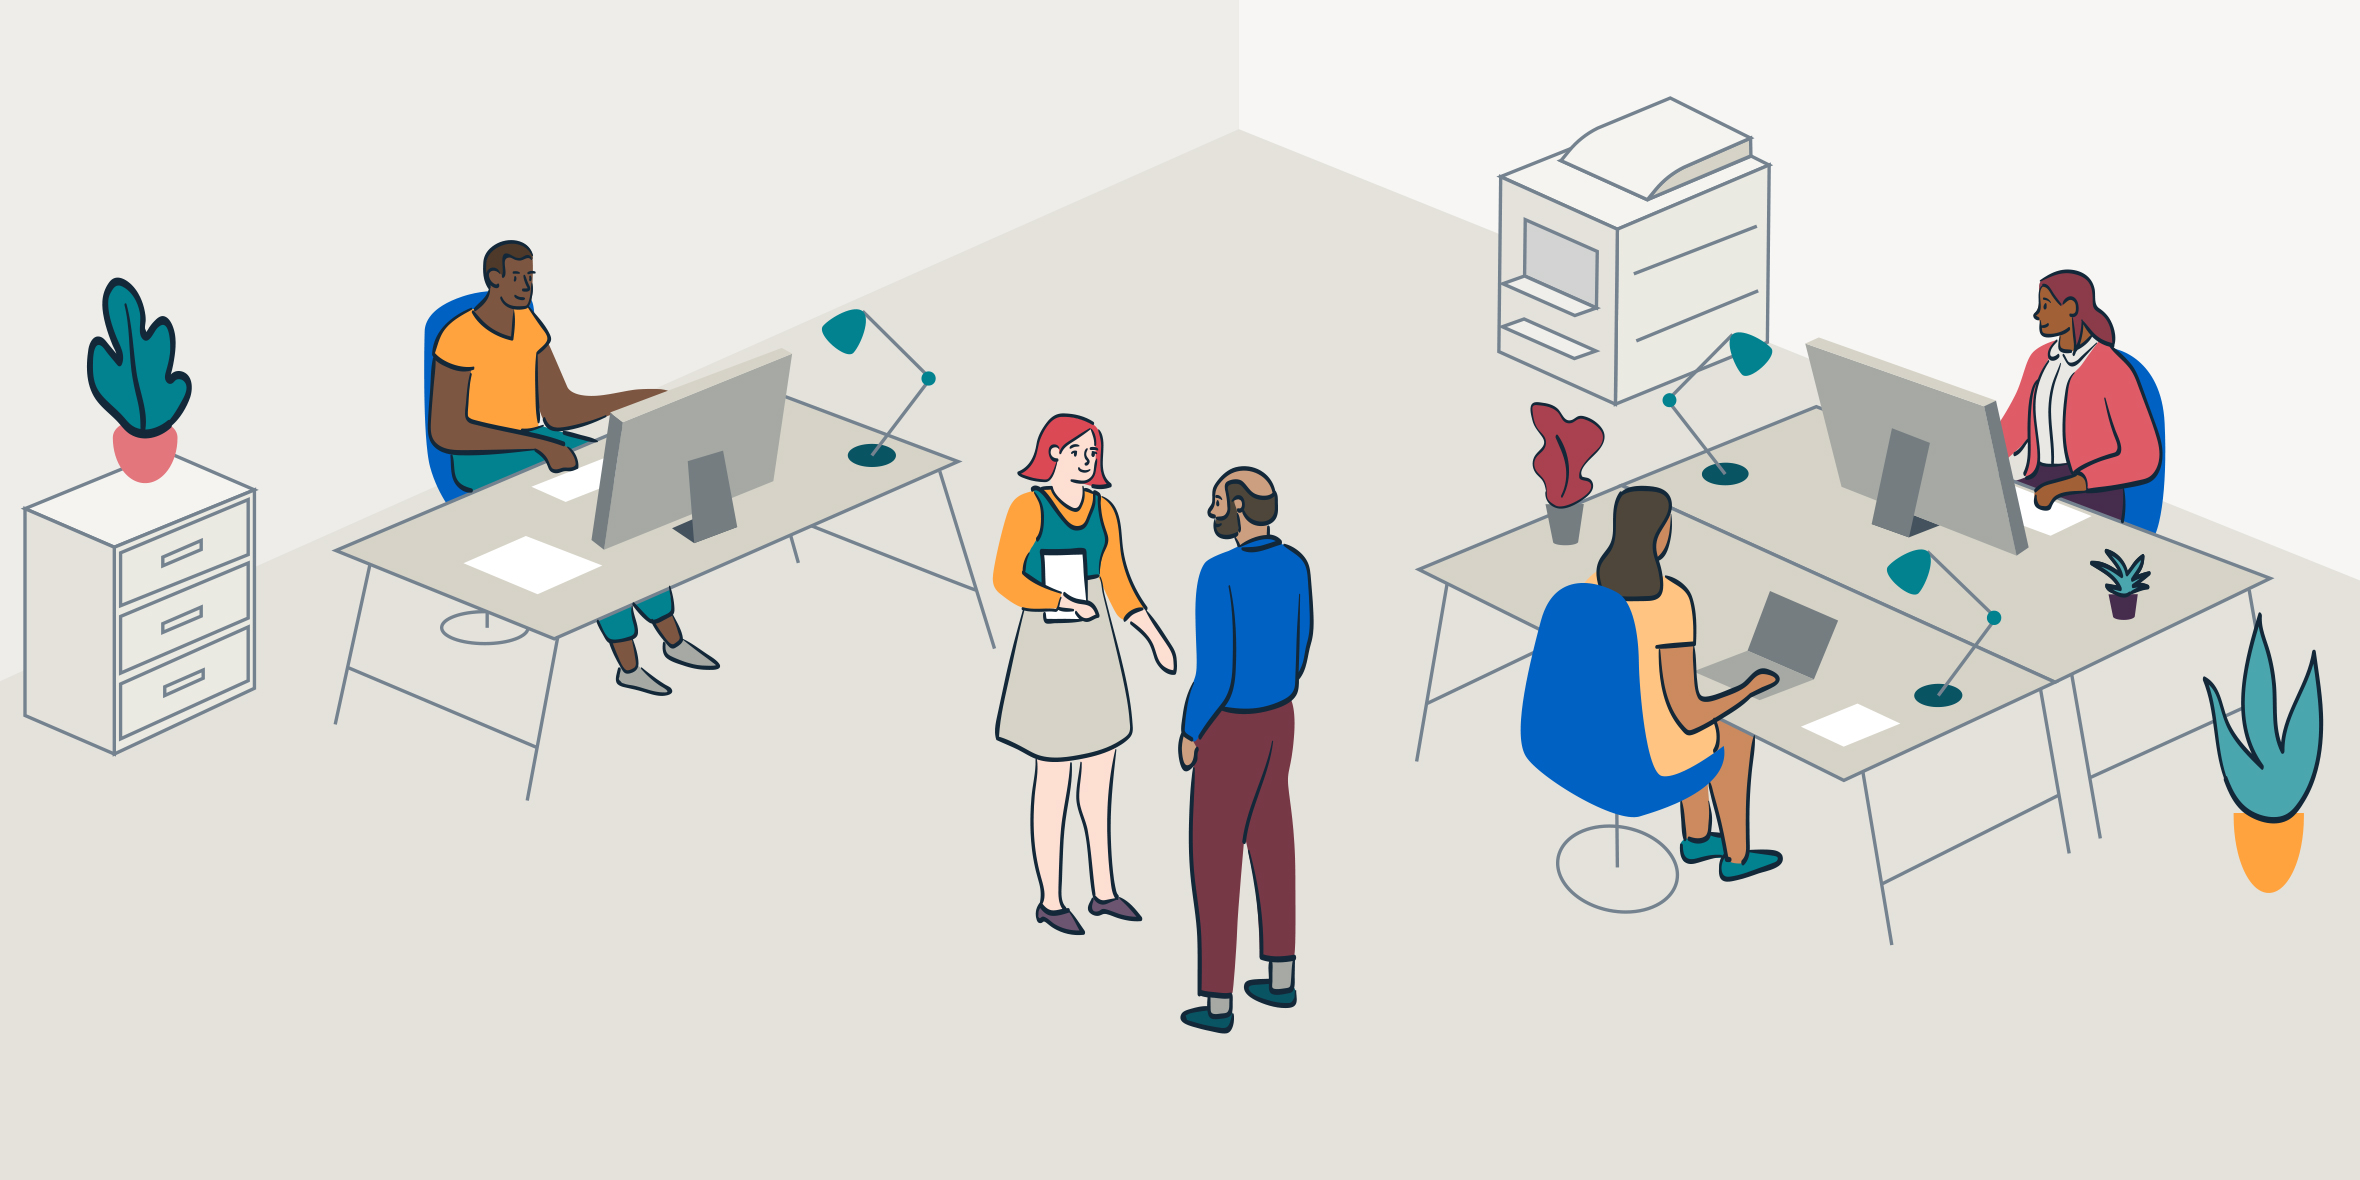 Illustration of an office with employees working